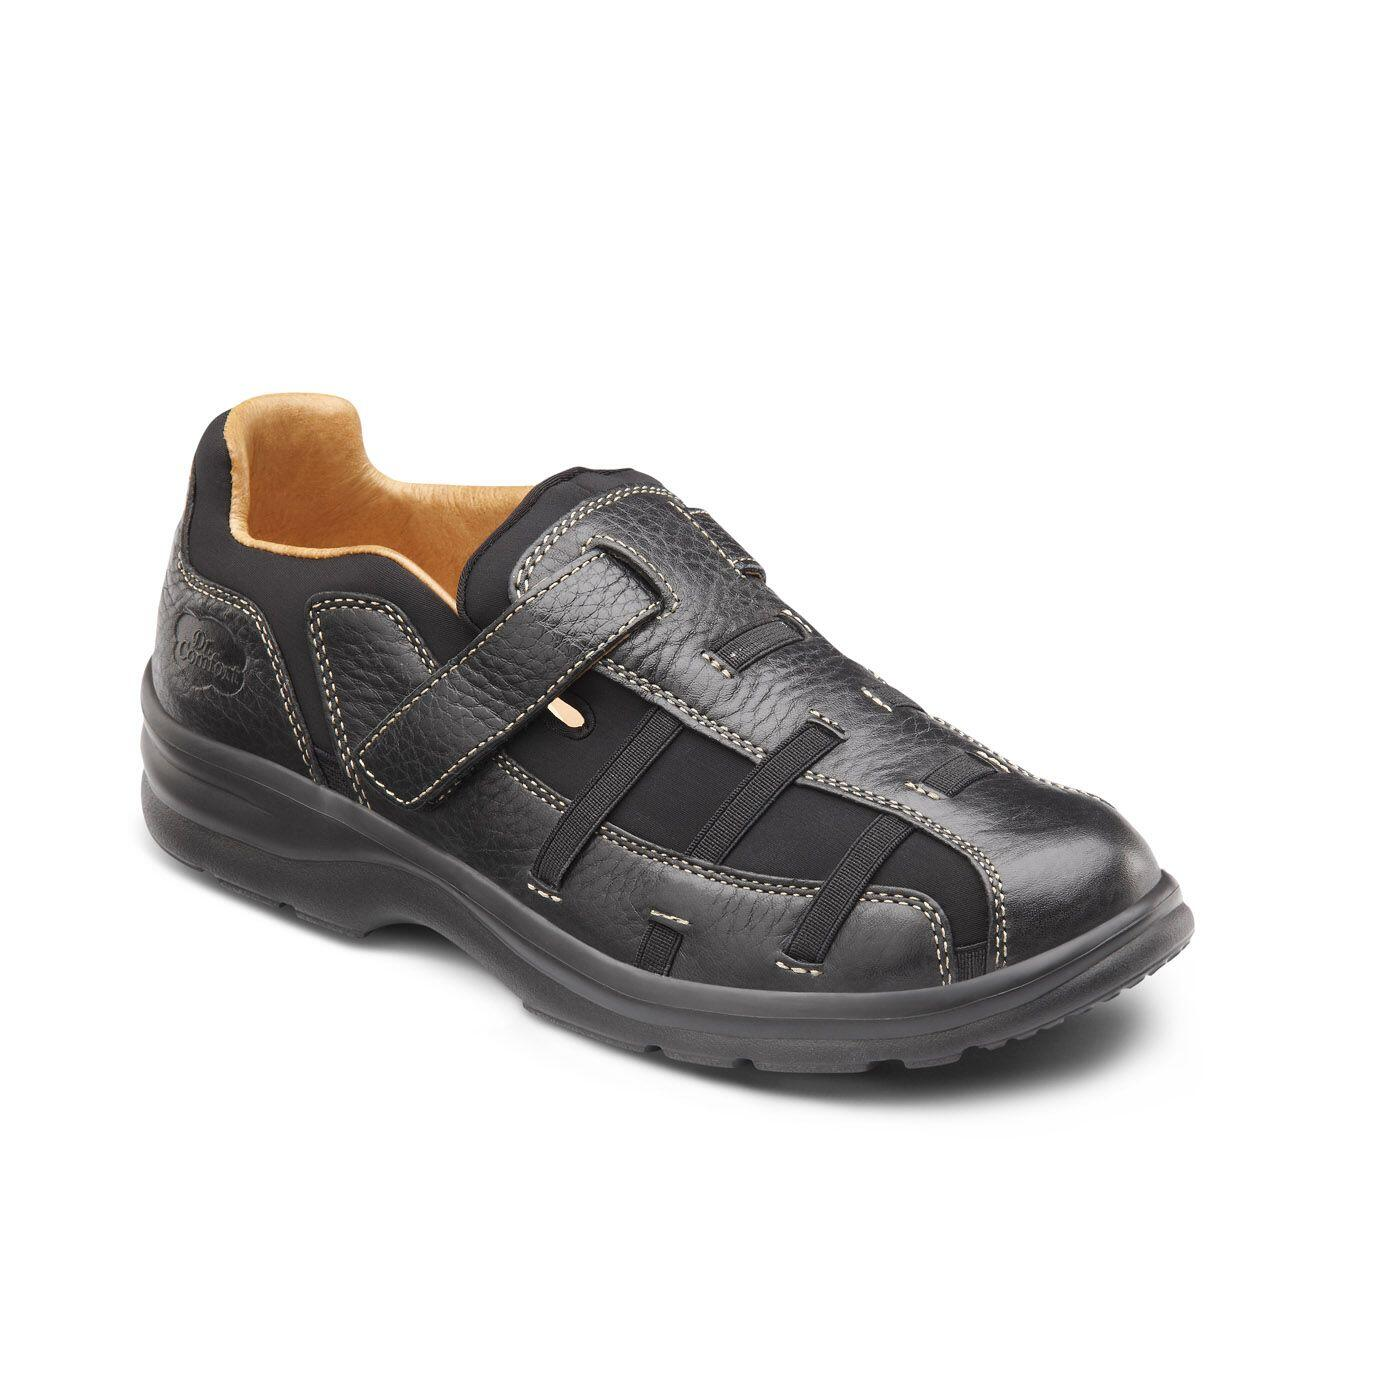 Dr Comfort Betty Women's Shoes